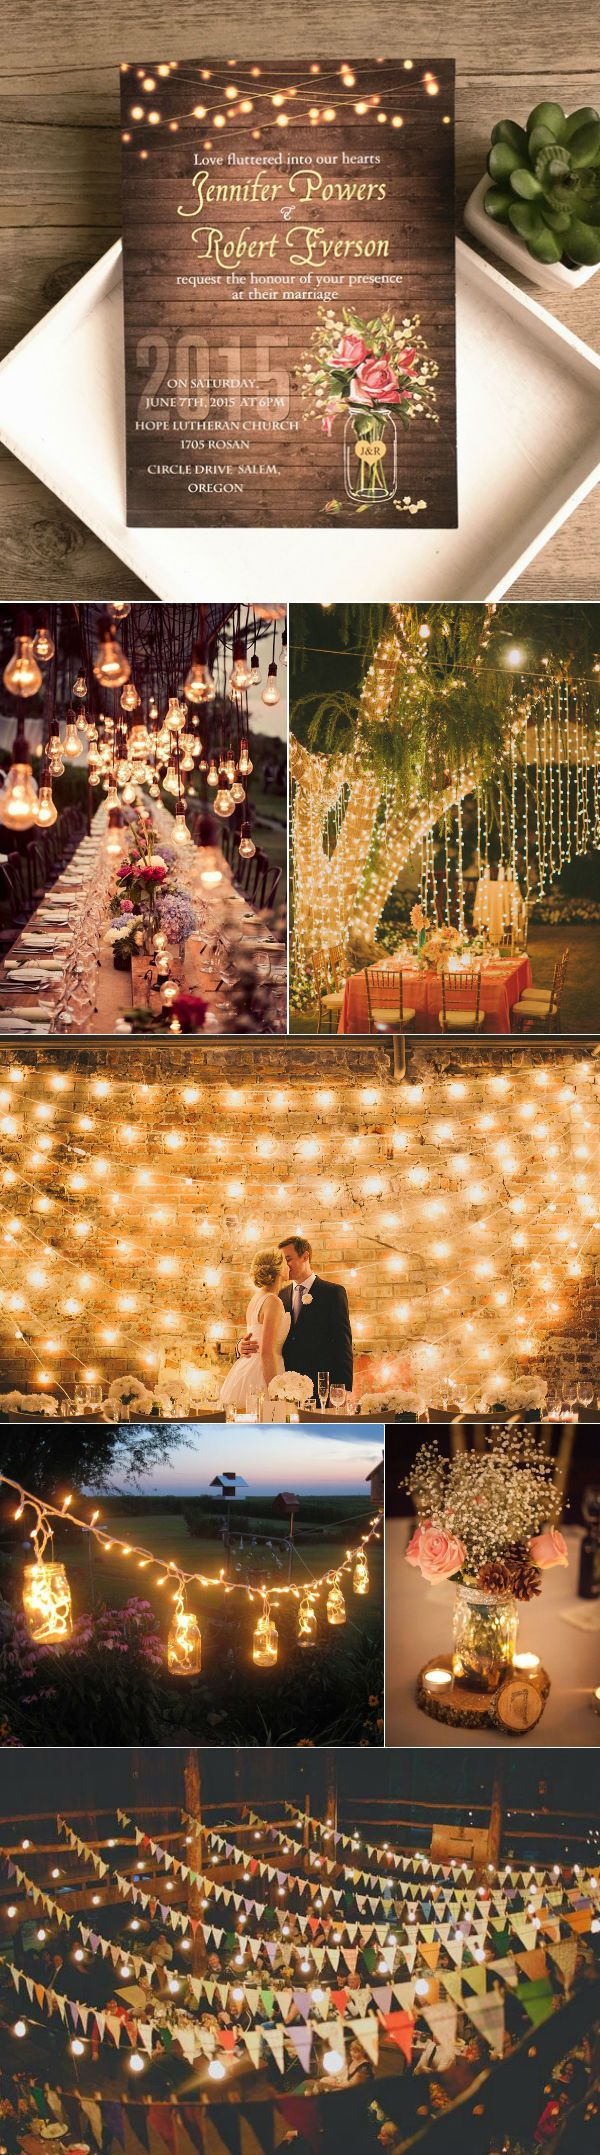 rustic wedding ideas with string lights and mason jars